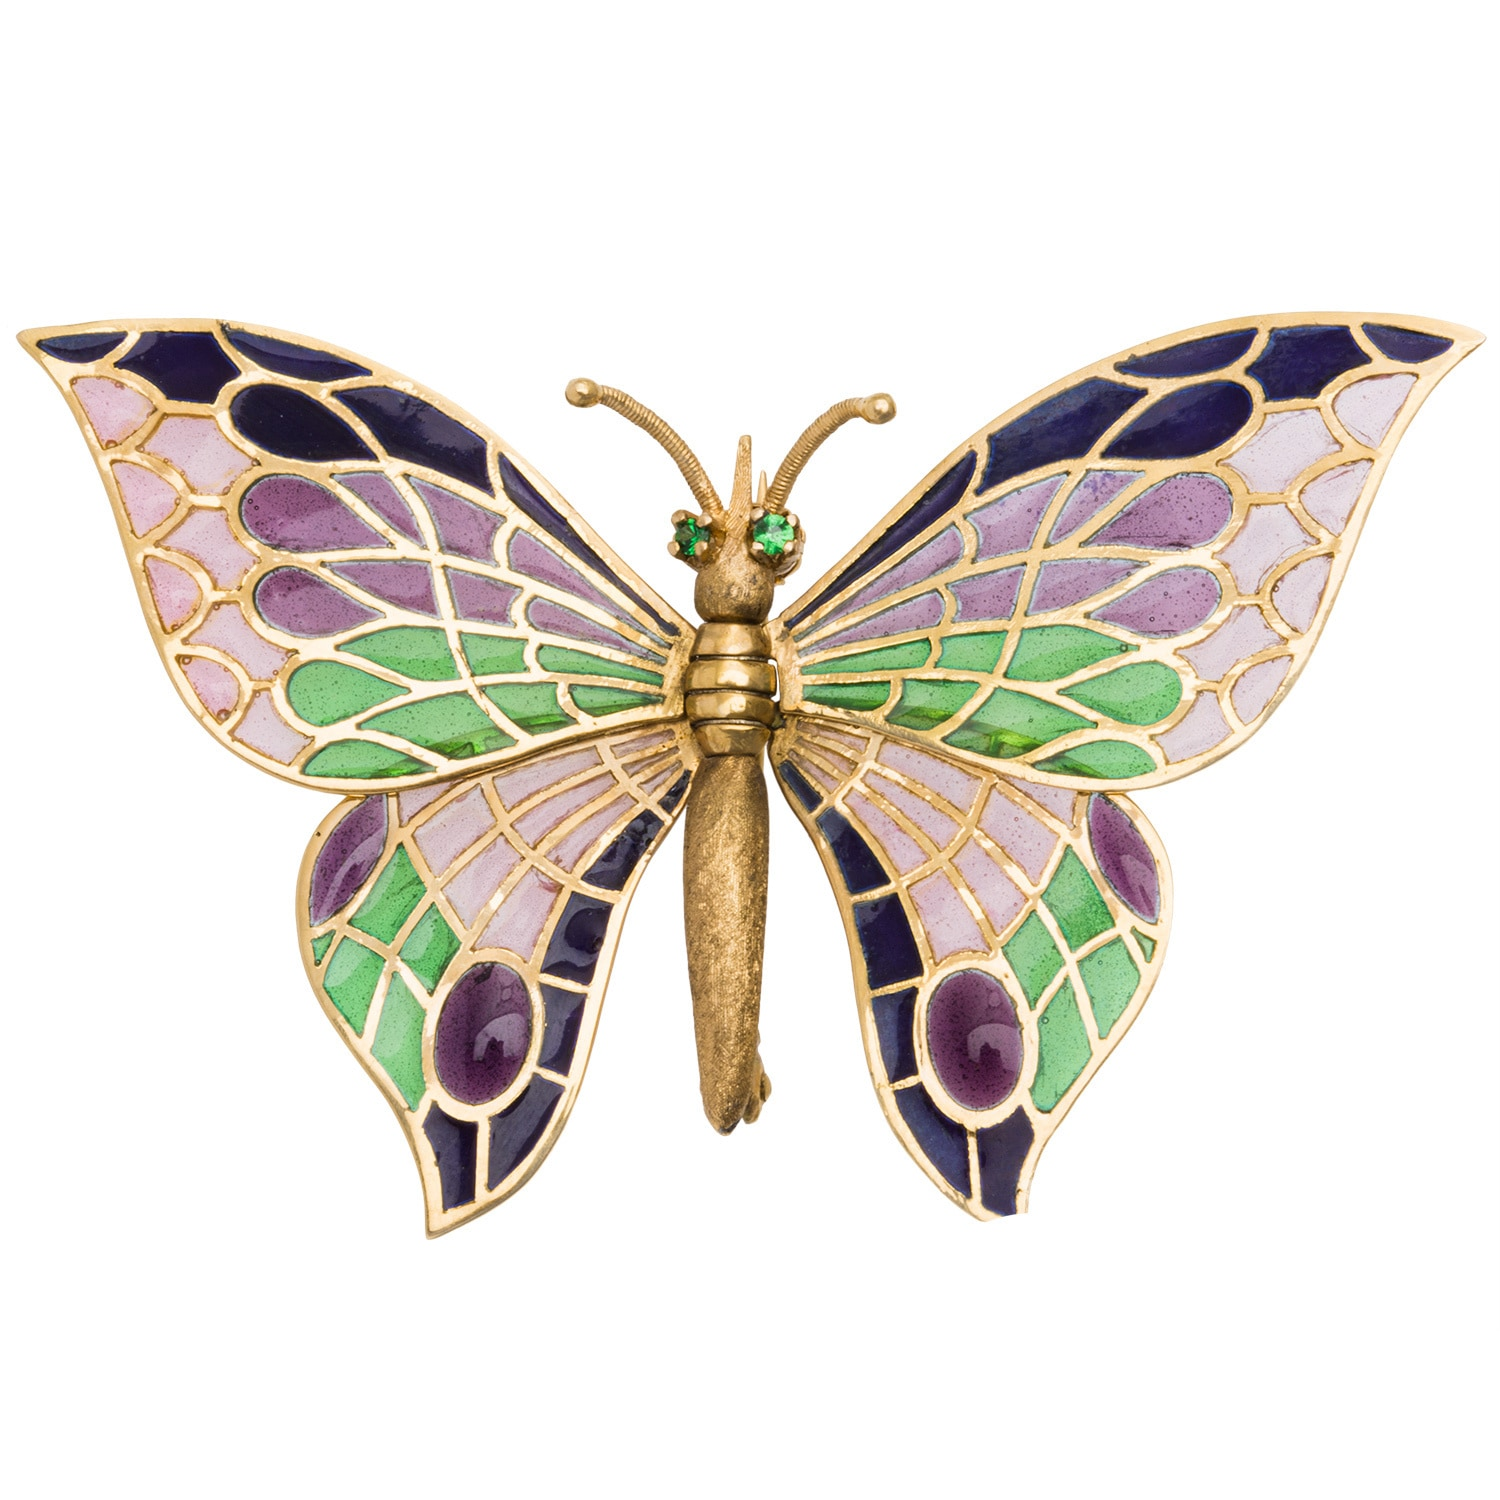 18k Yellow Gold Emerald Plique-a-jour Enameled Butterfly ...